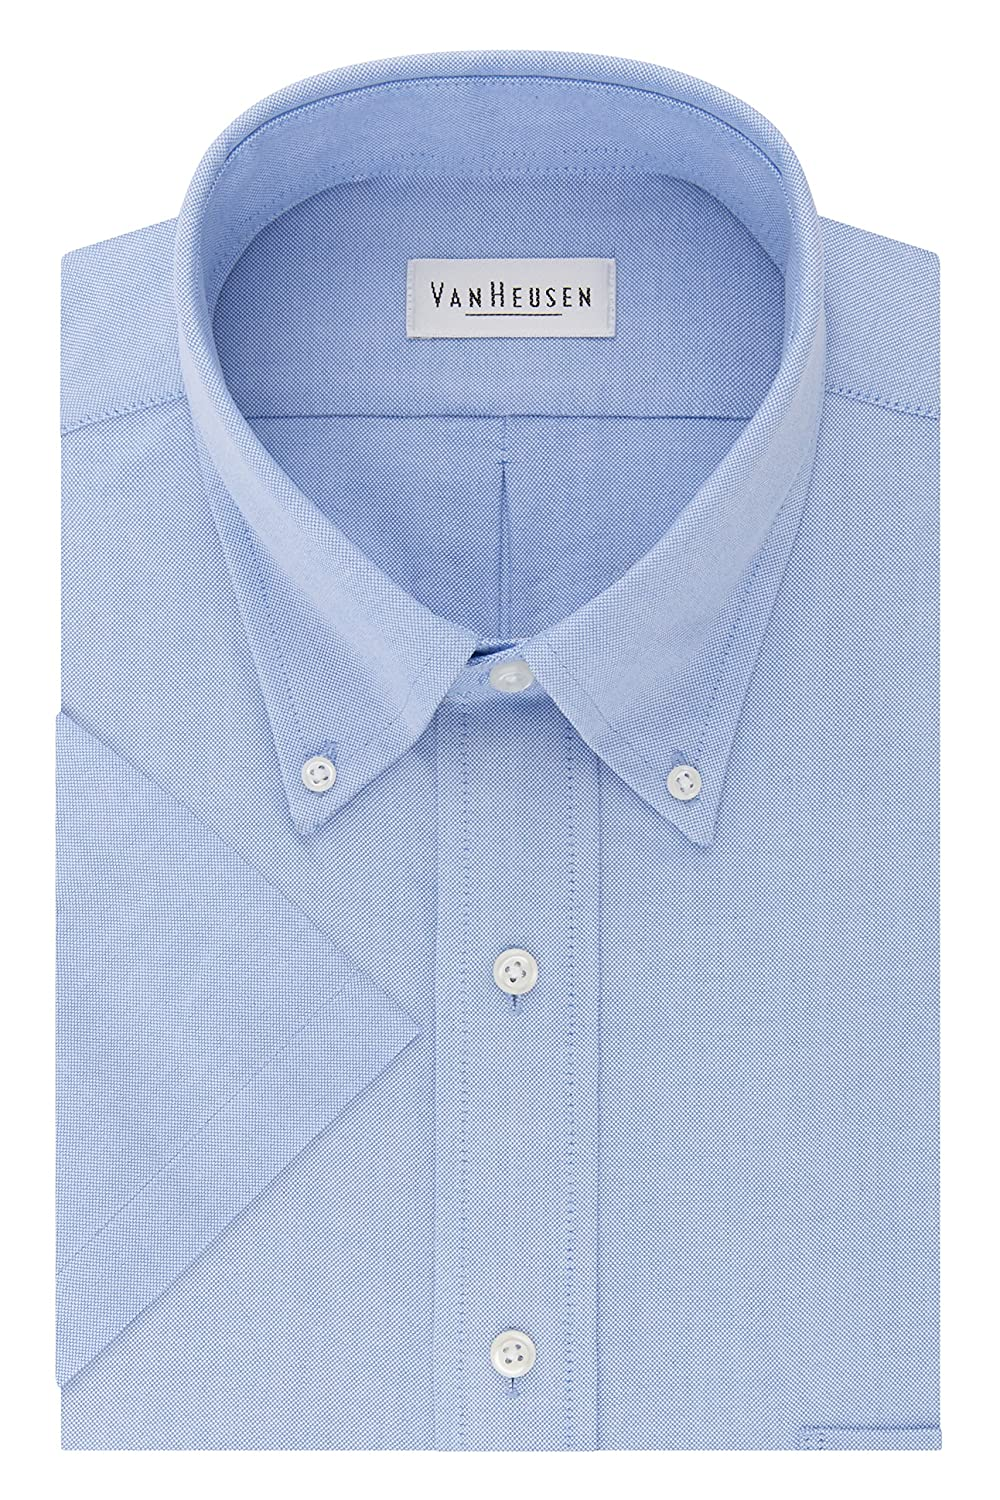 Van Heusen APPAREL メンズ ユニセックスアダルト B00RSK0PVE XXXXXX-Large|ブルー ブルー XXXXXX-Large